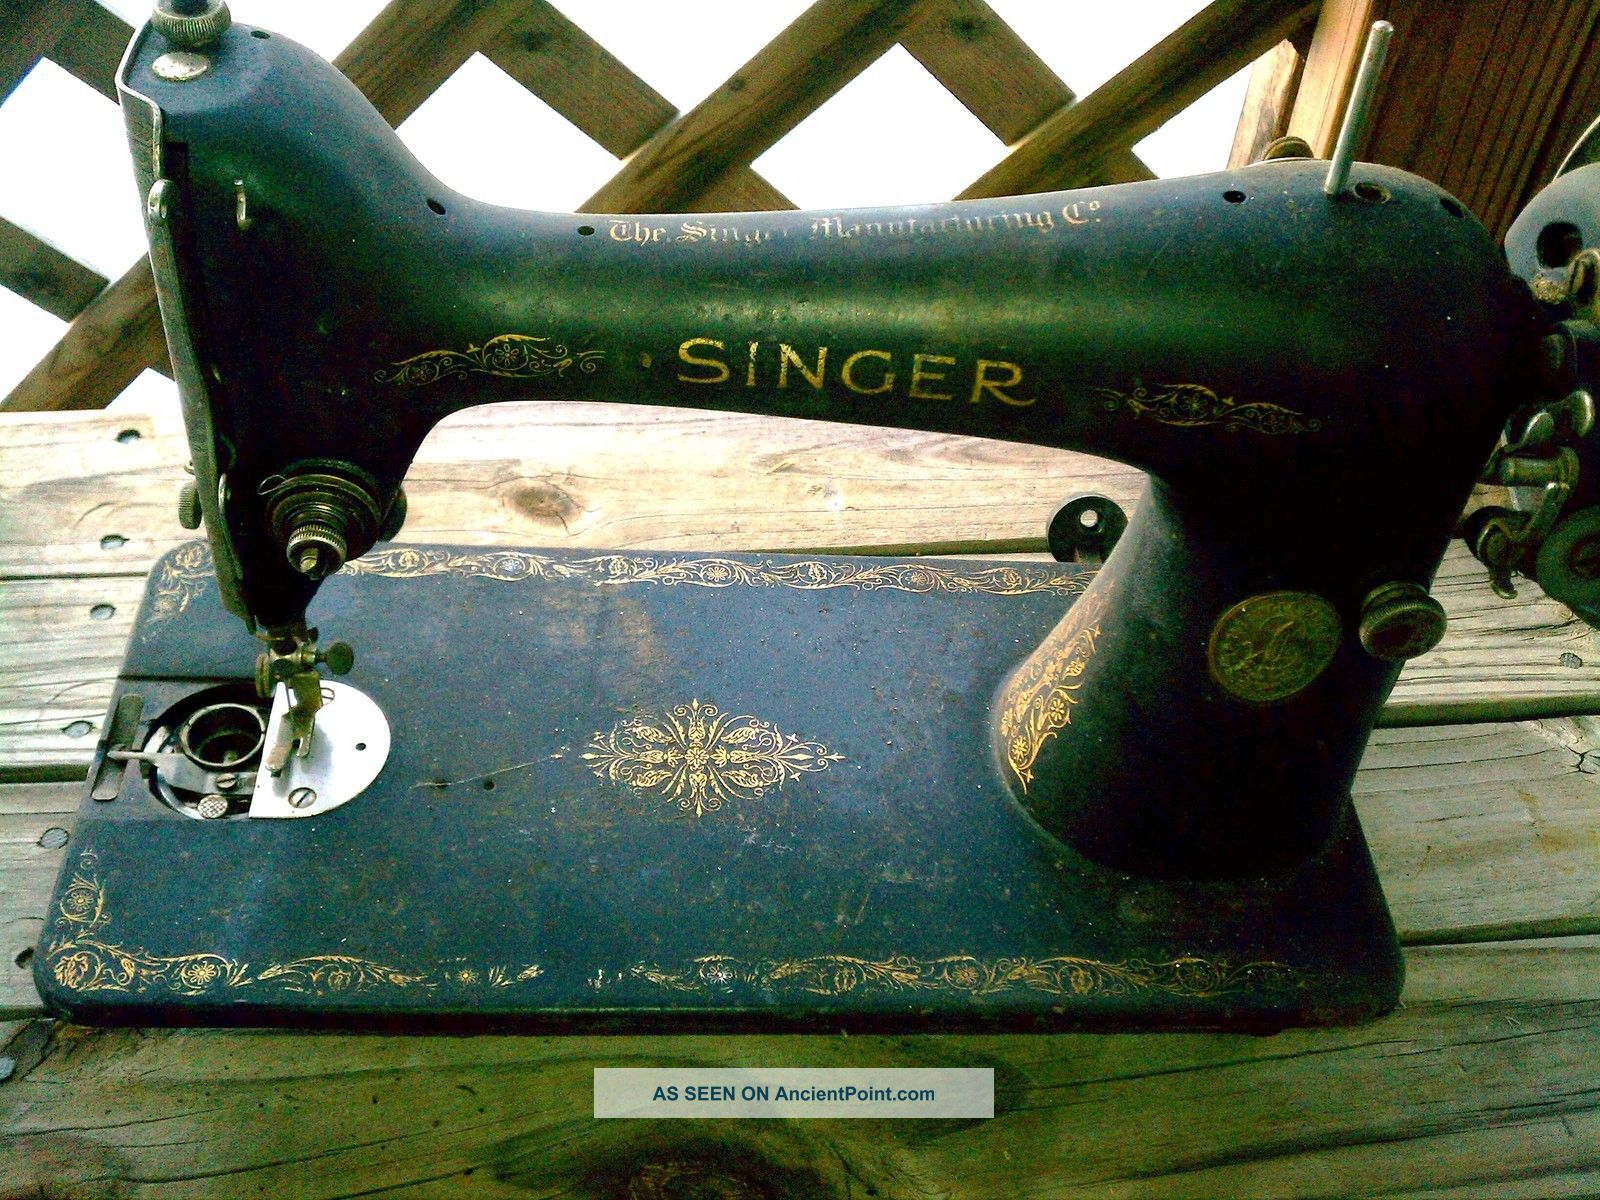 Antique Vtg 1930 Singer Sewing Machine From Treadle - Good Condition - Needs Cleand Sewing Machines photo